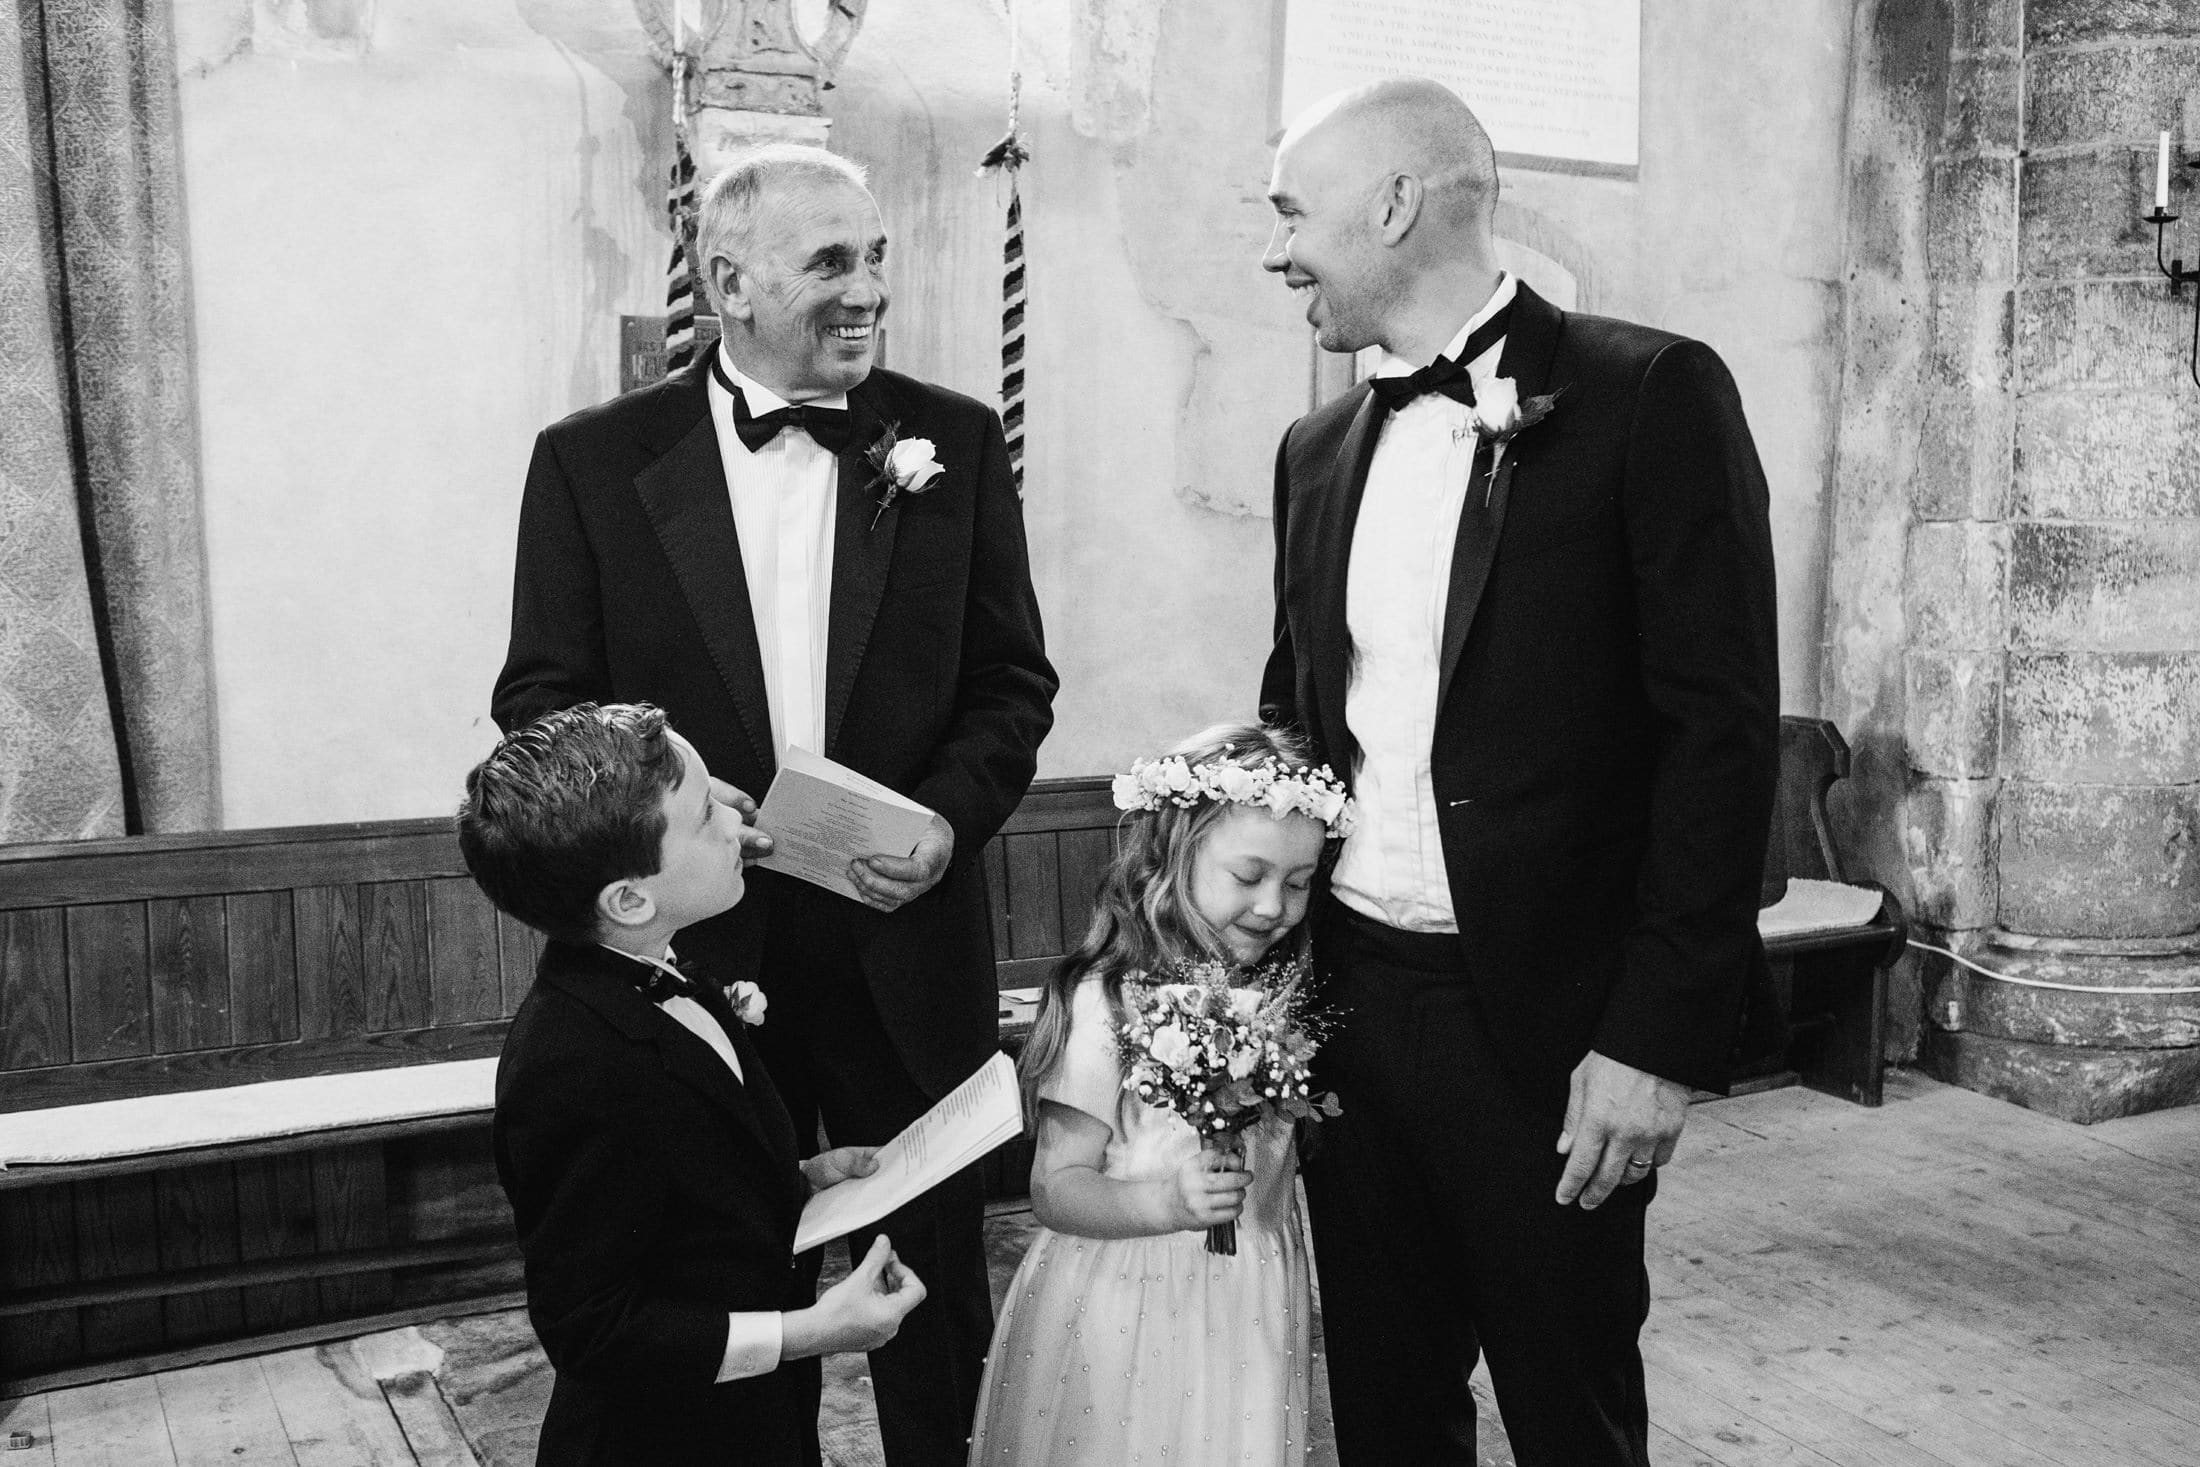 wedding guests, flower girl and page boy. Flower girl hugging dad's knee